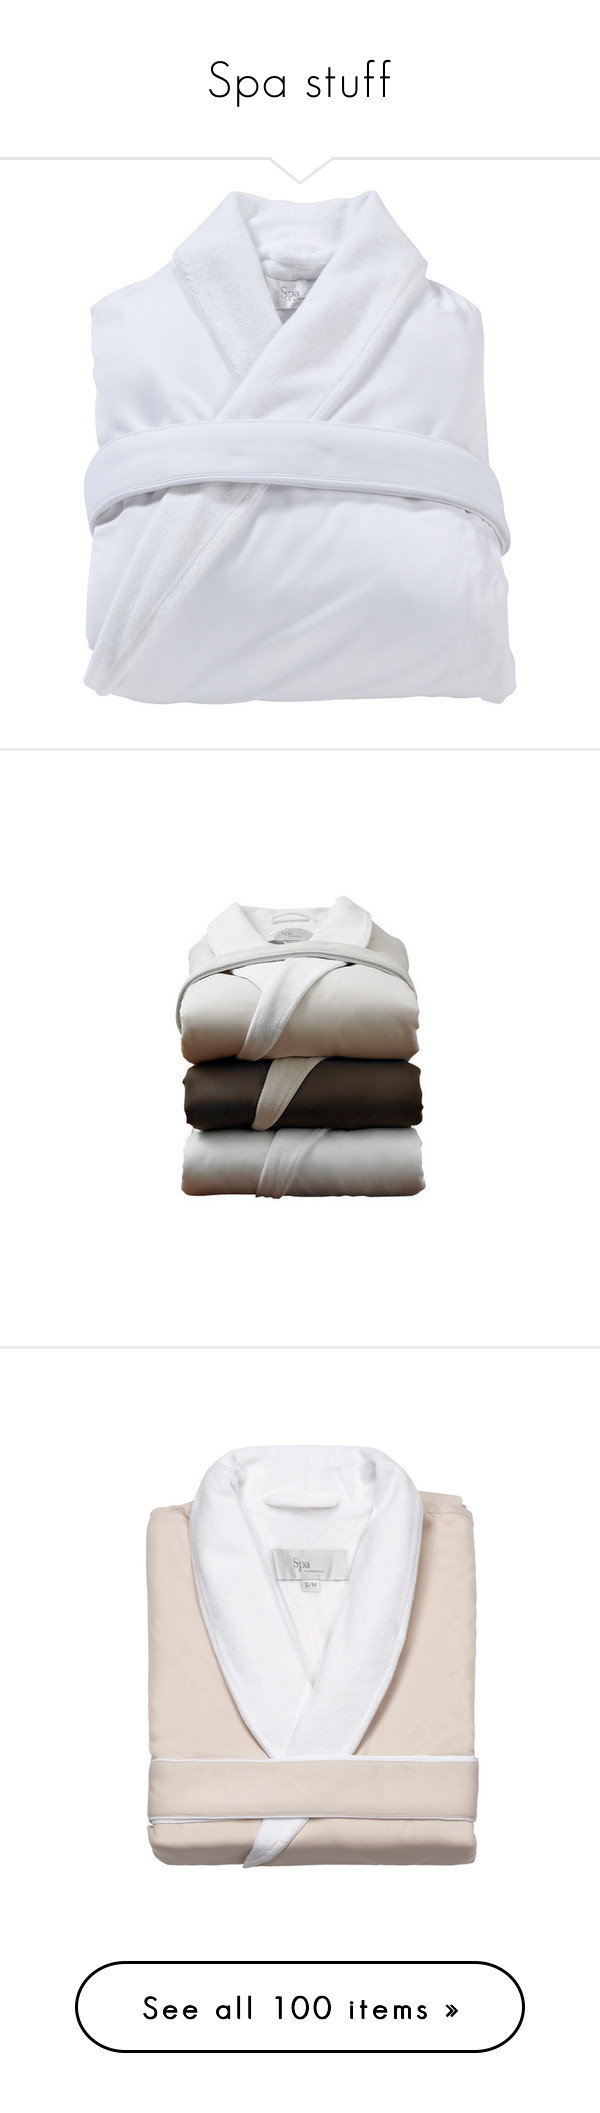 """""""Spa stuff"""" by kristie-miles ❤ liked on Polyvore featuring intimates, robes, pajamas, bath, tops, long bath robe, kassatex, long white robe, long bathrobe and white bath robe"""